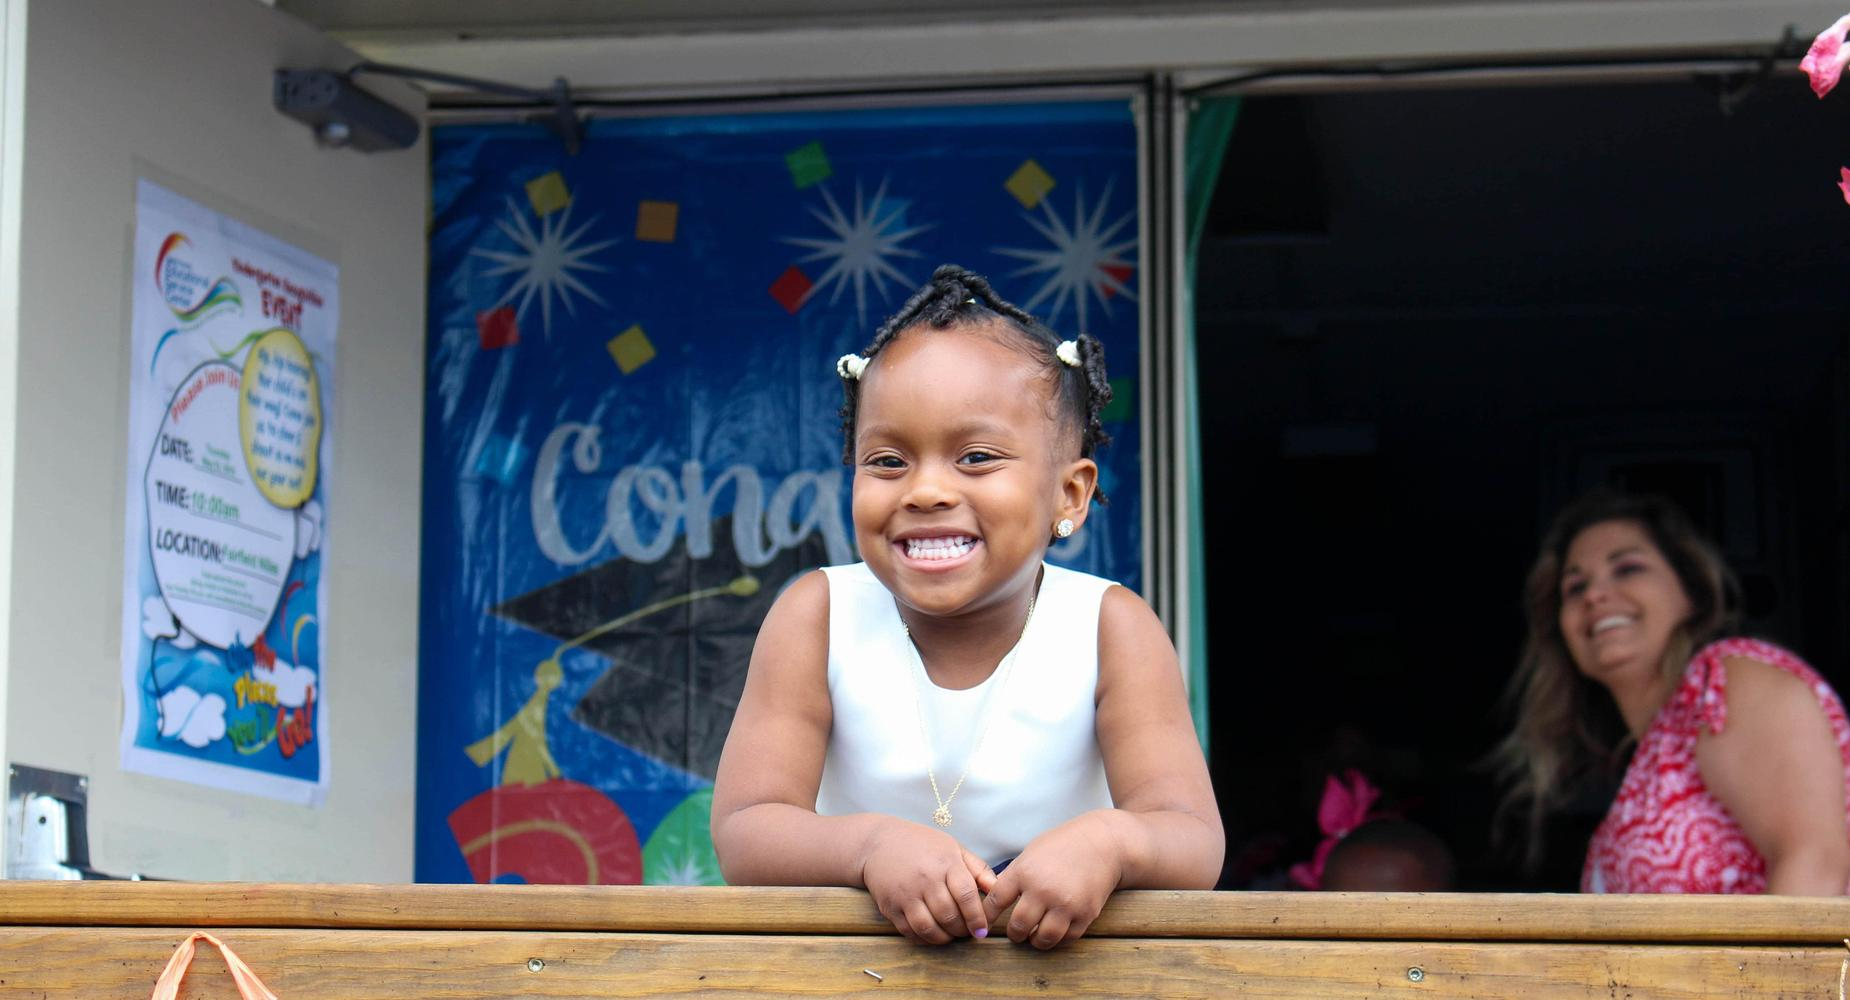 A young Black female Head Start student celebrates her graduation from the program with a smile from the podium